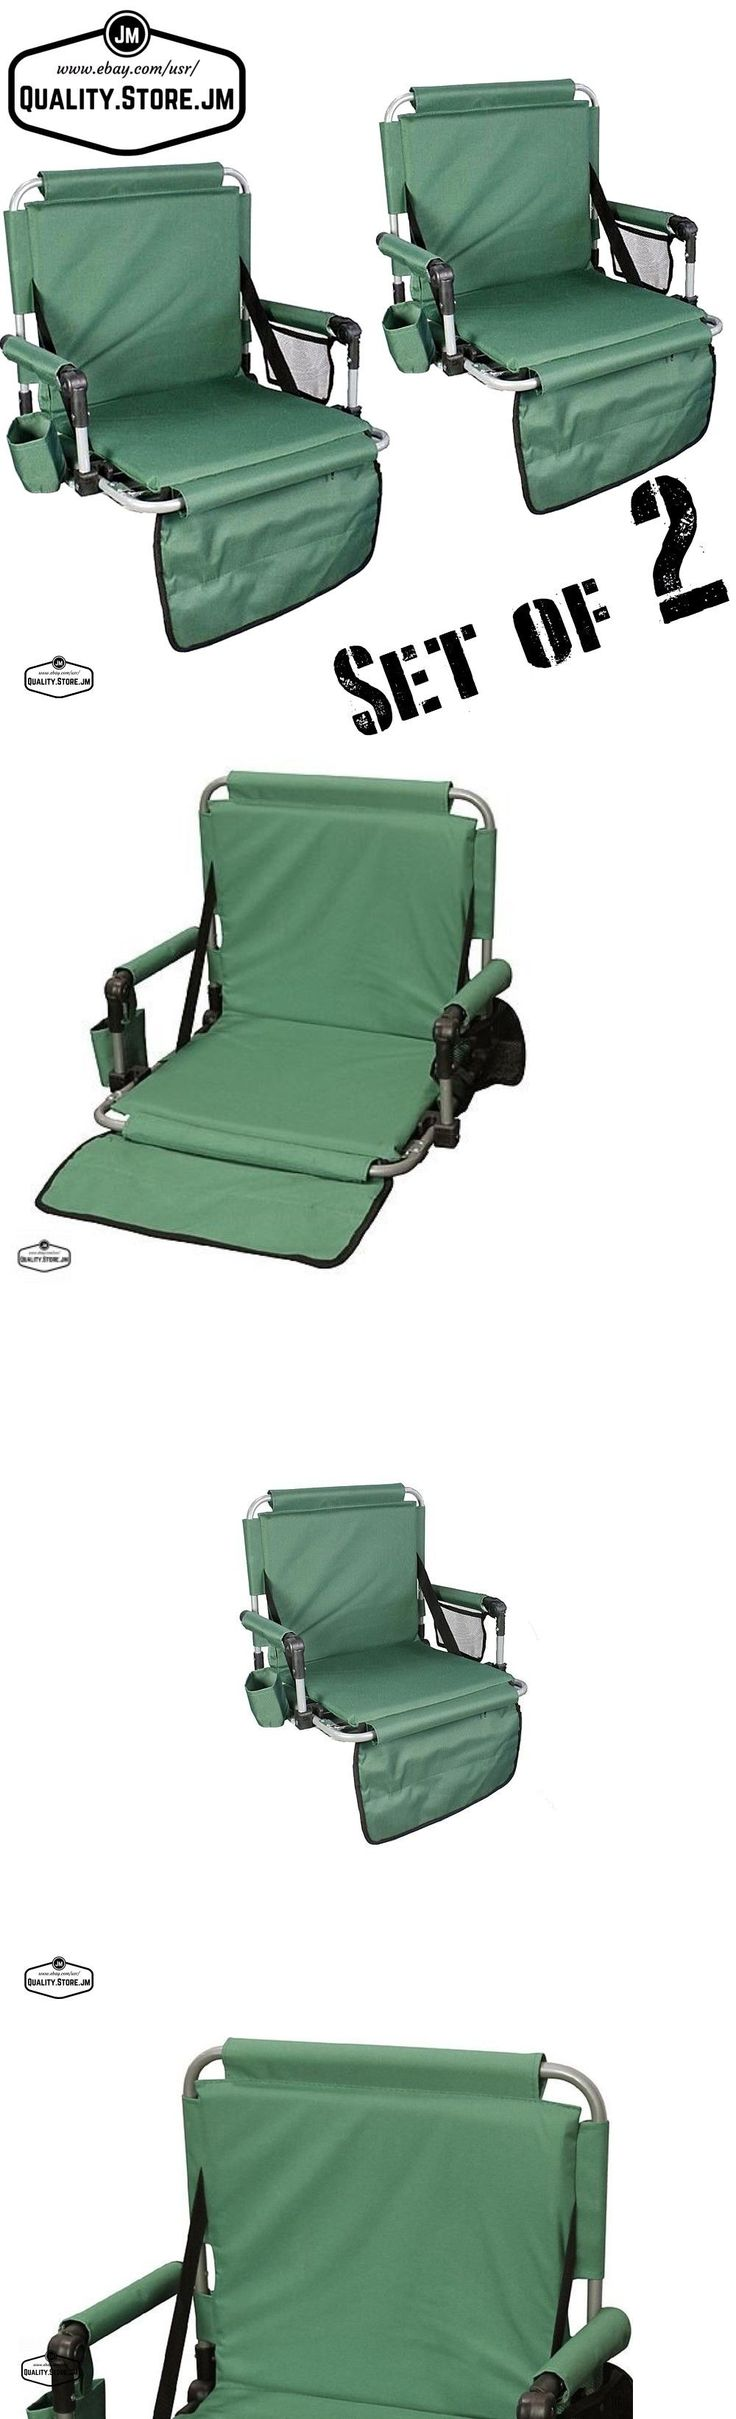 Other Outdoor Sports 159048: Stadium Chair Seat Folding Portable Bleacher Lawn Padded Football Outdoor Pad 2 -> BUY IT NOW ONLY: $42.9 on eBay!